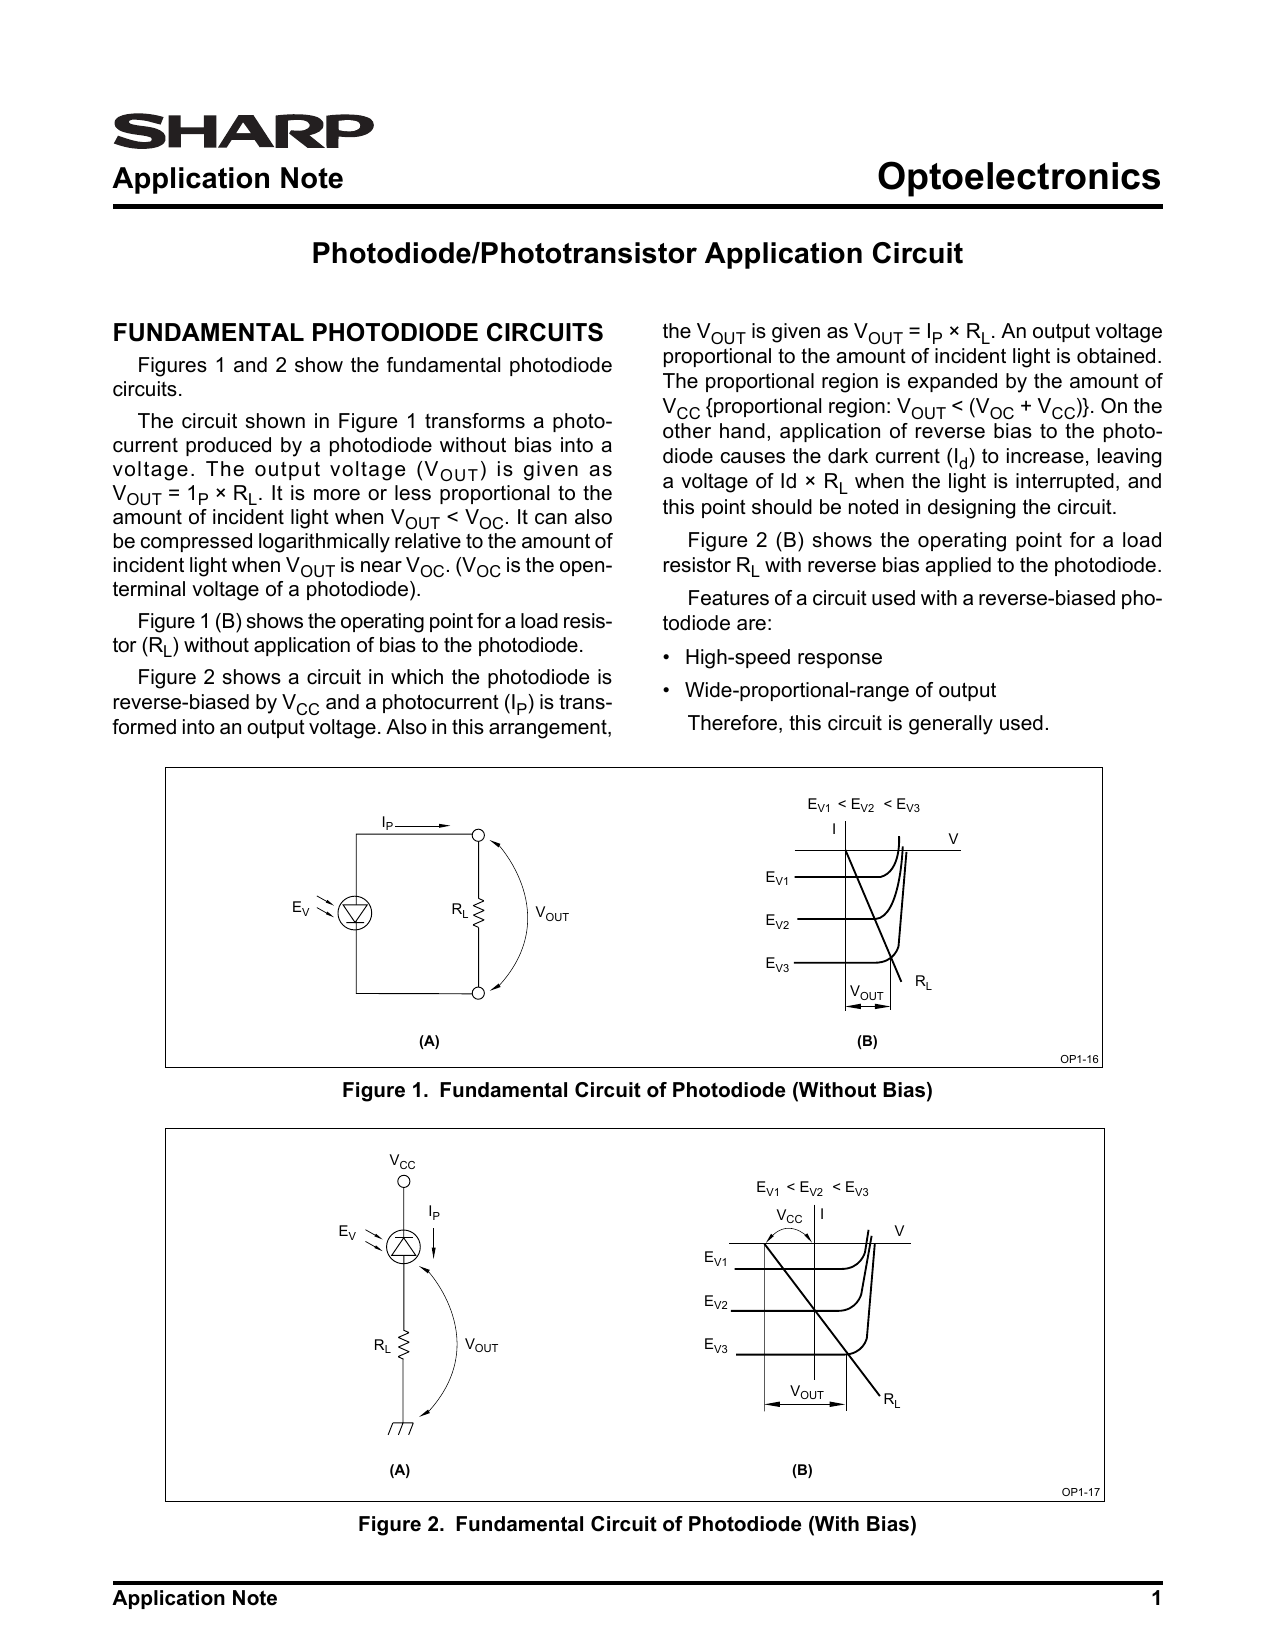 Optoelectronics Application Note Fundamental Photodiode Circuits Photodiodes Signal Conditioning Ic